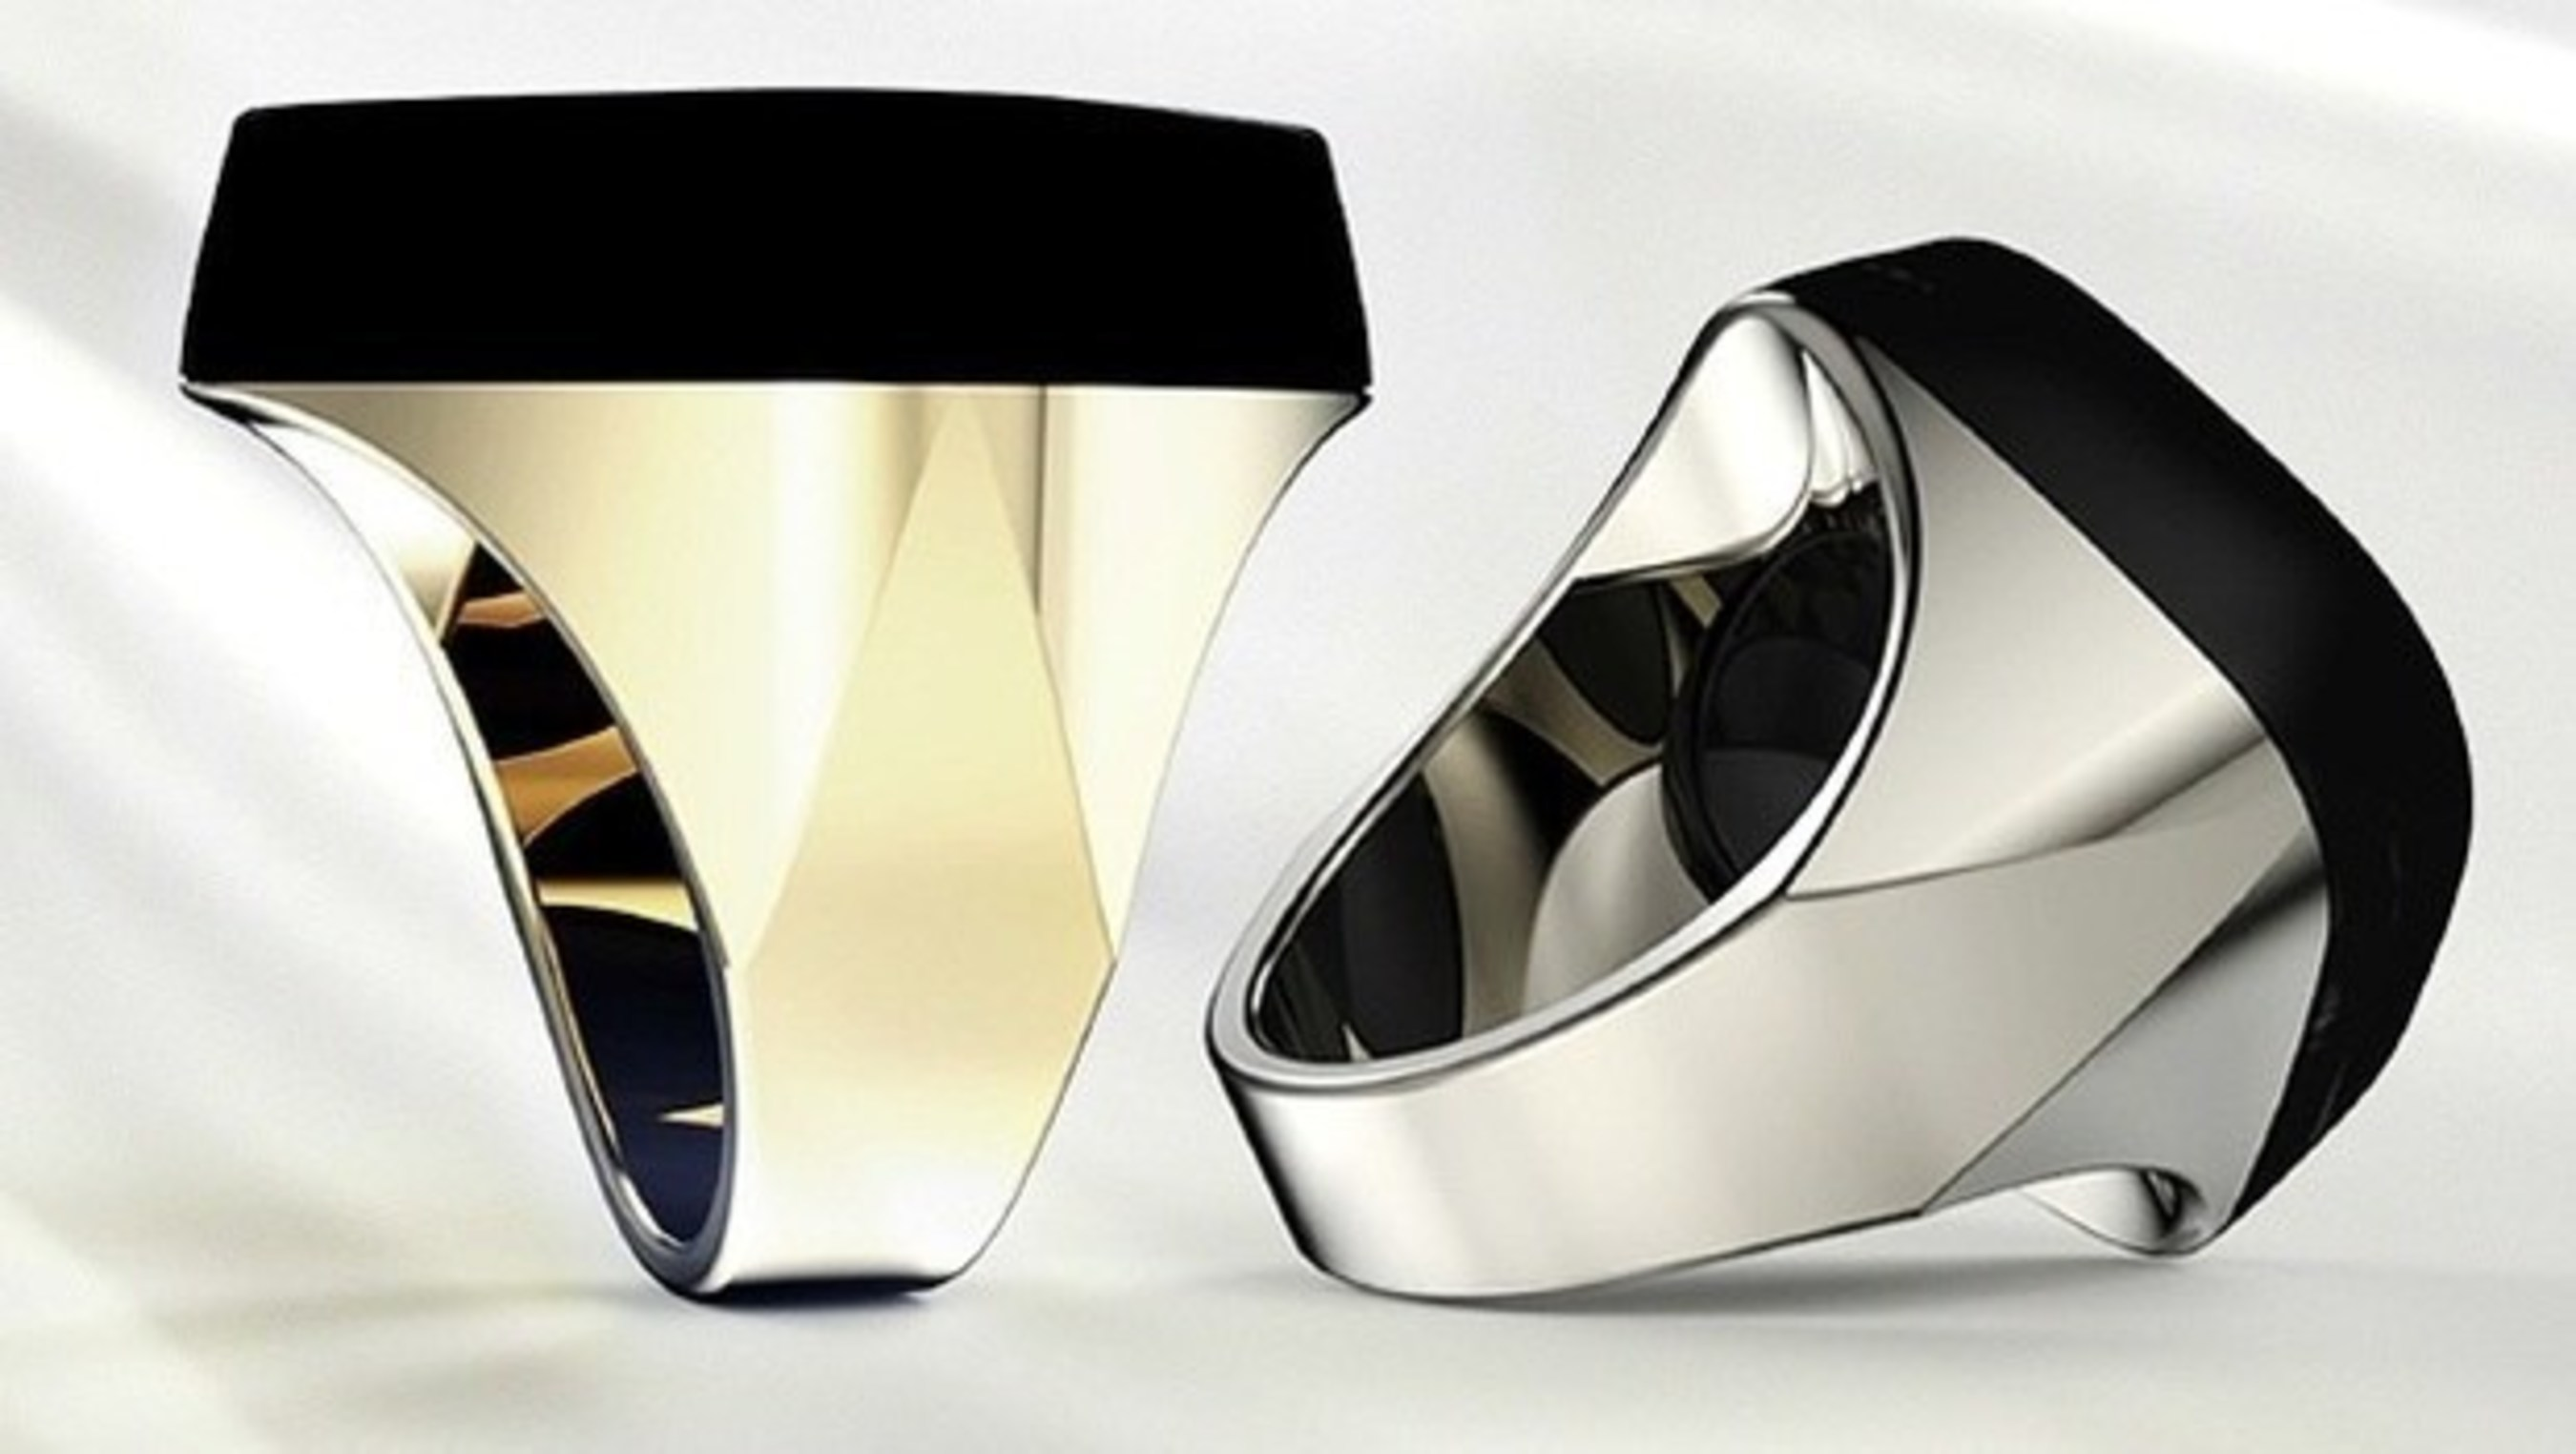 Smart. Stylish. Small. the Neyya Smart Ring, an Ideal Holiday Gift for the On-the-Go Woman, Is Now